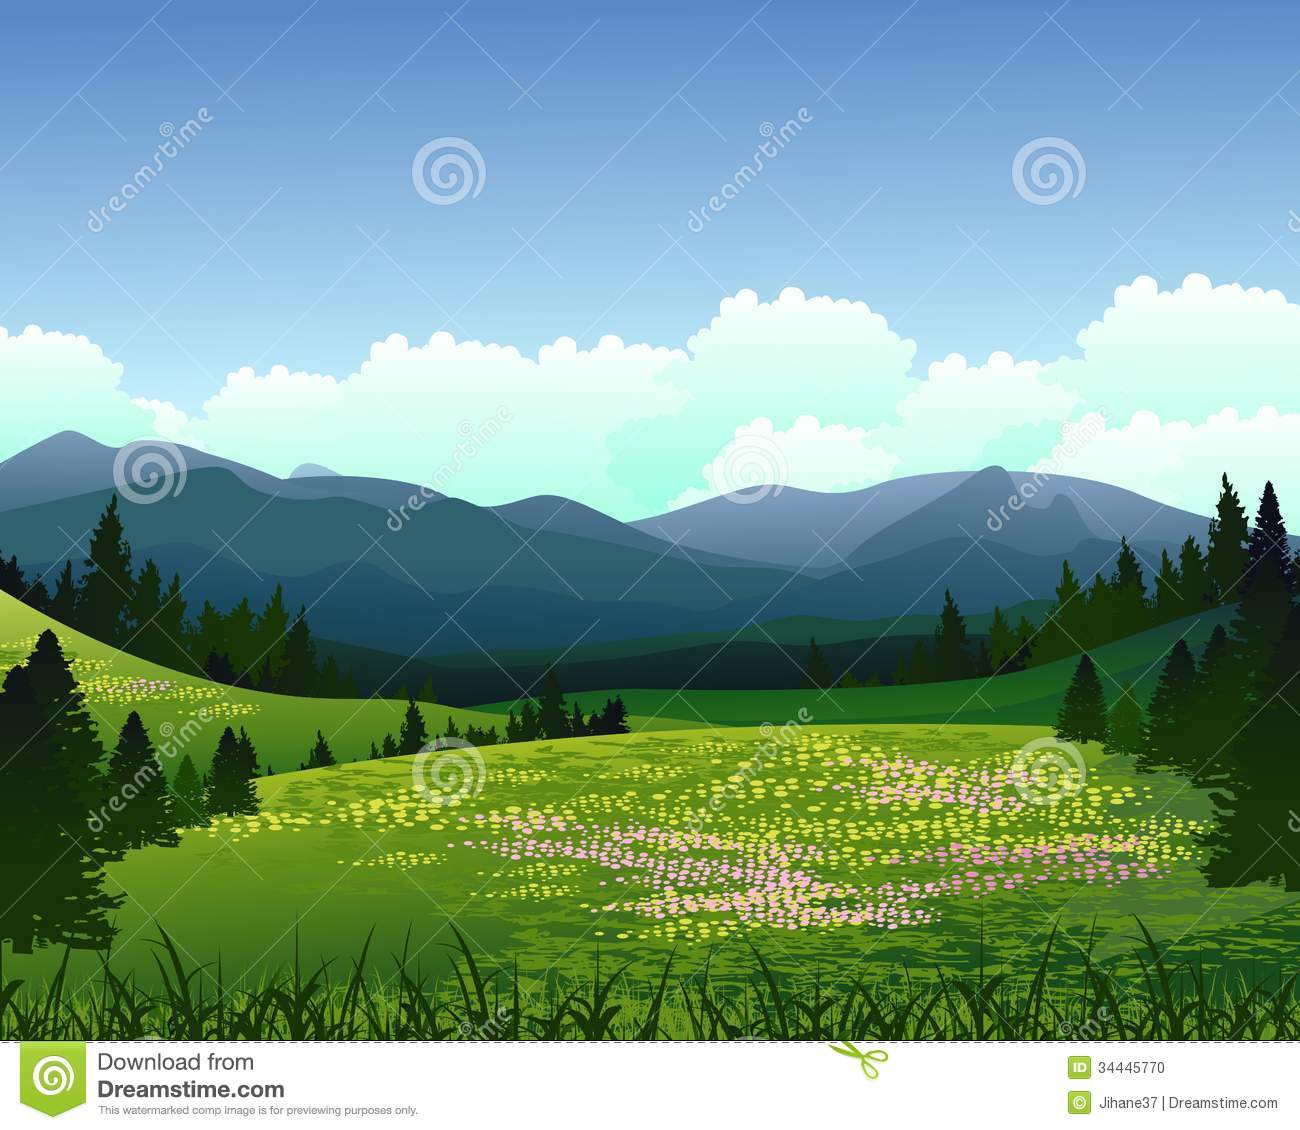 Landscape Illustration Vector Free: Landscape With Pine Forest And Mountain Background Stock